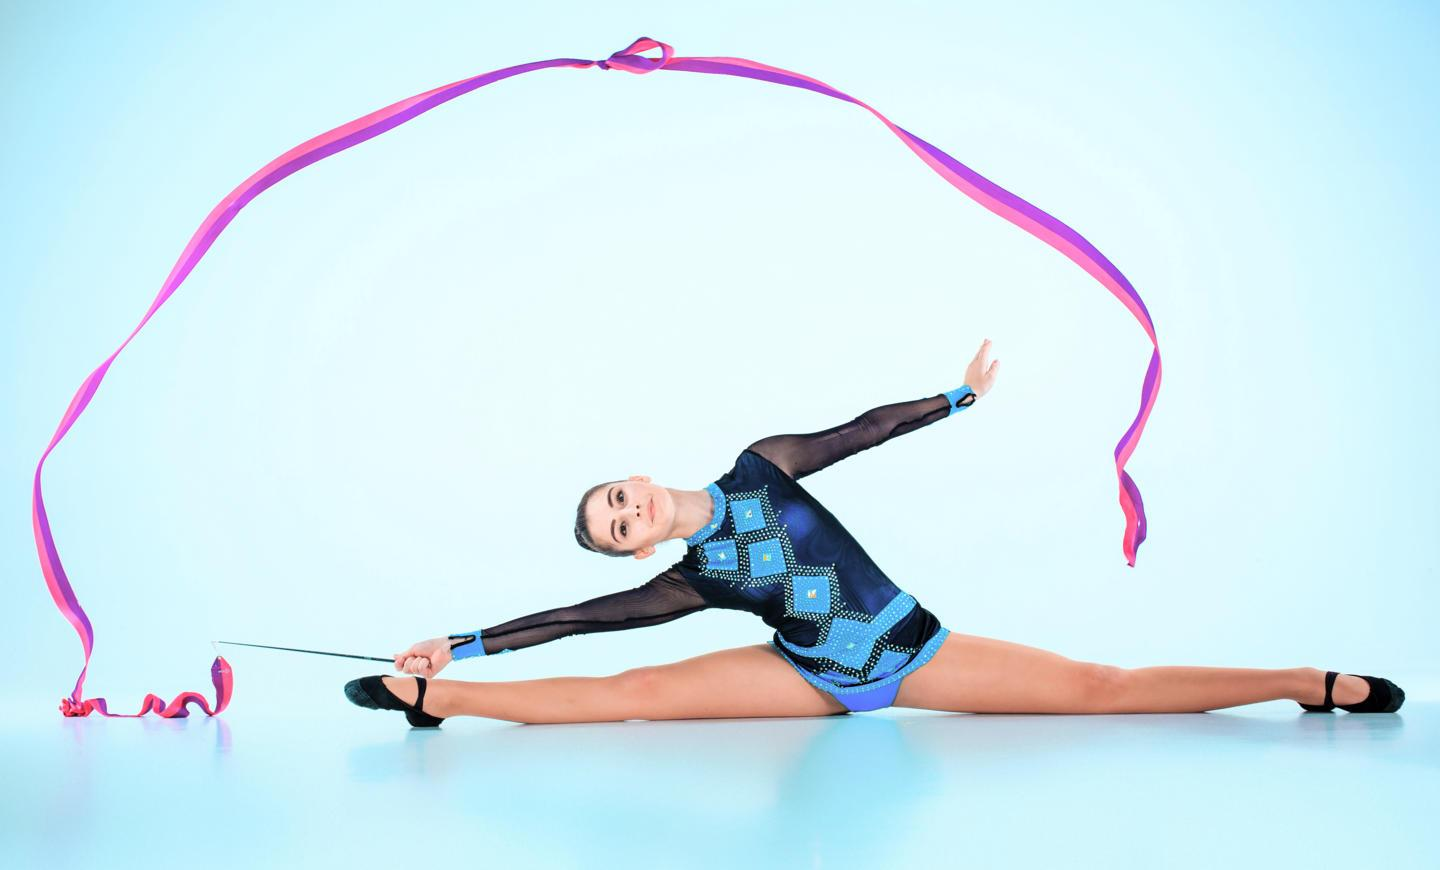 girl-doing-gymnastics-dance-with-colored-ribbon-blue-space.jpg